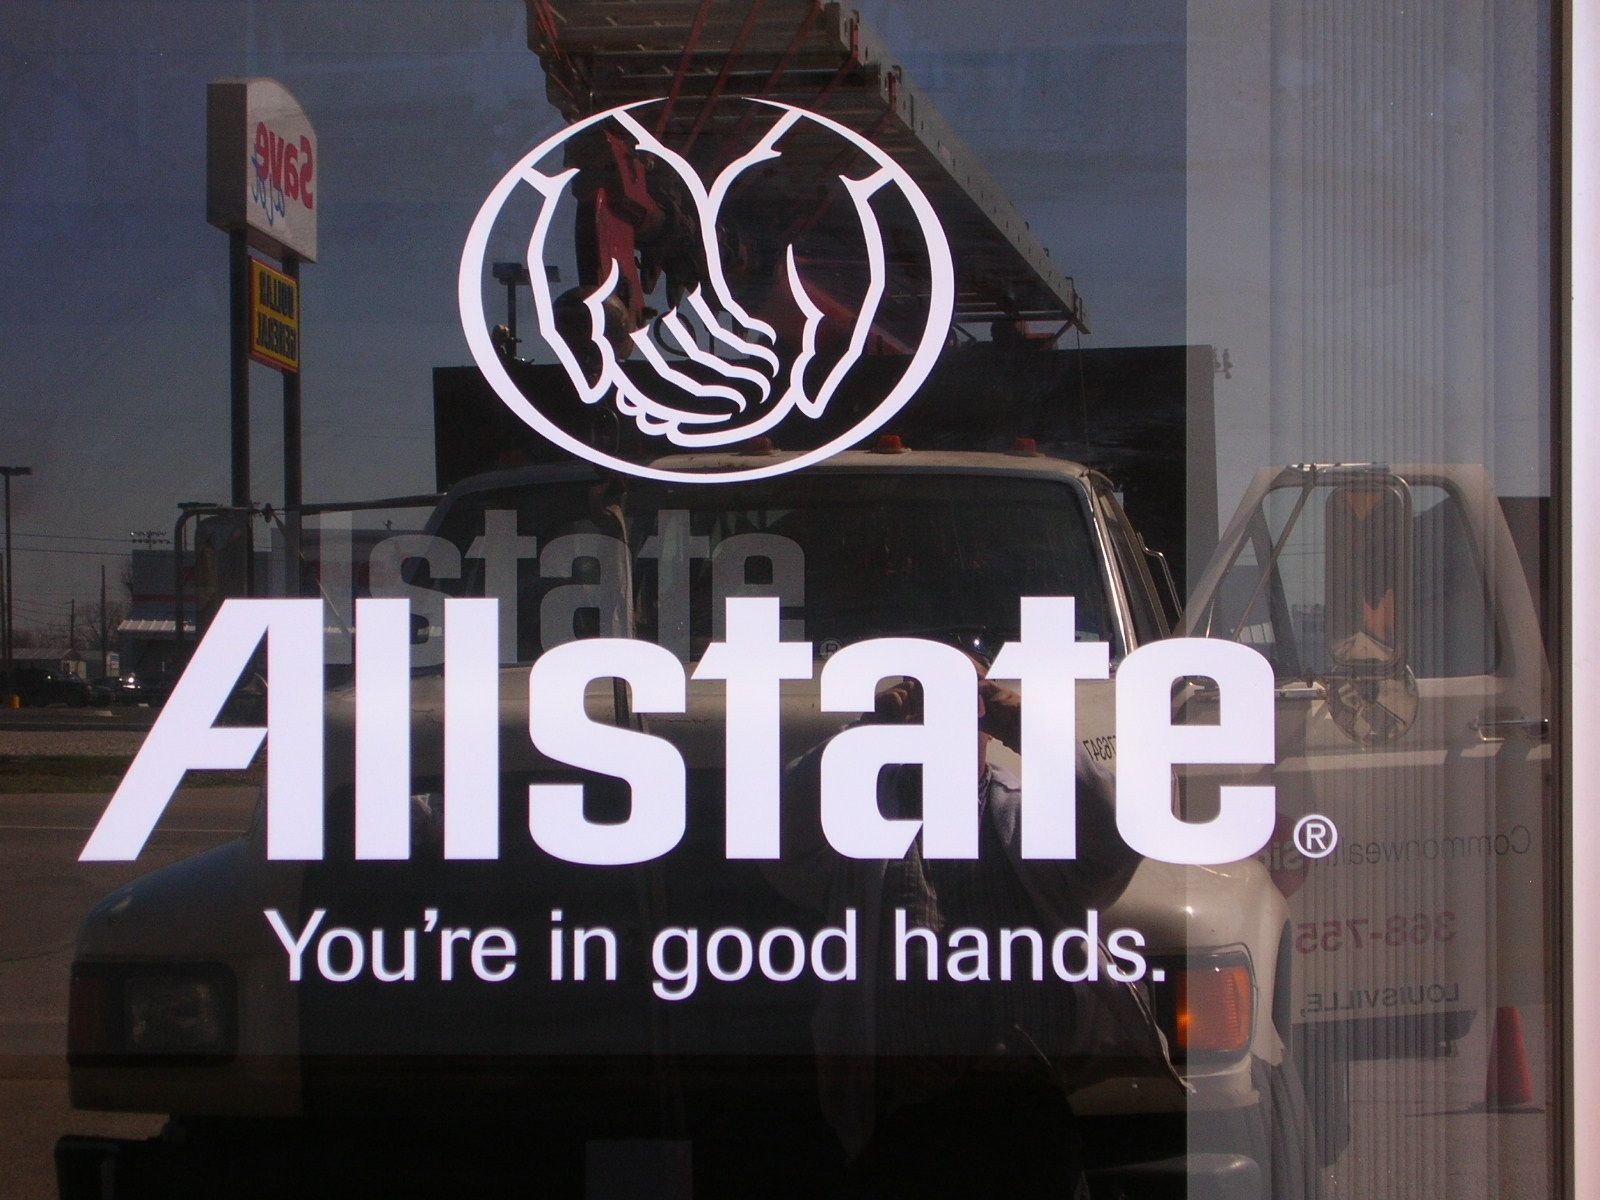 Allstate Door vinyl allstate monwealthsign